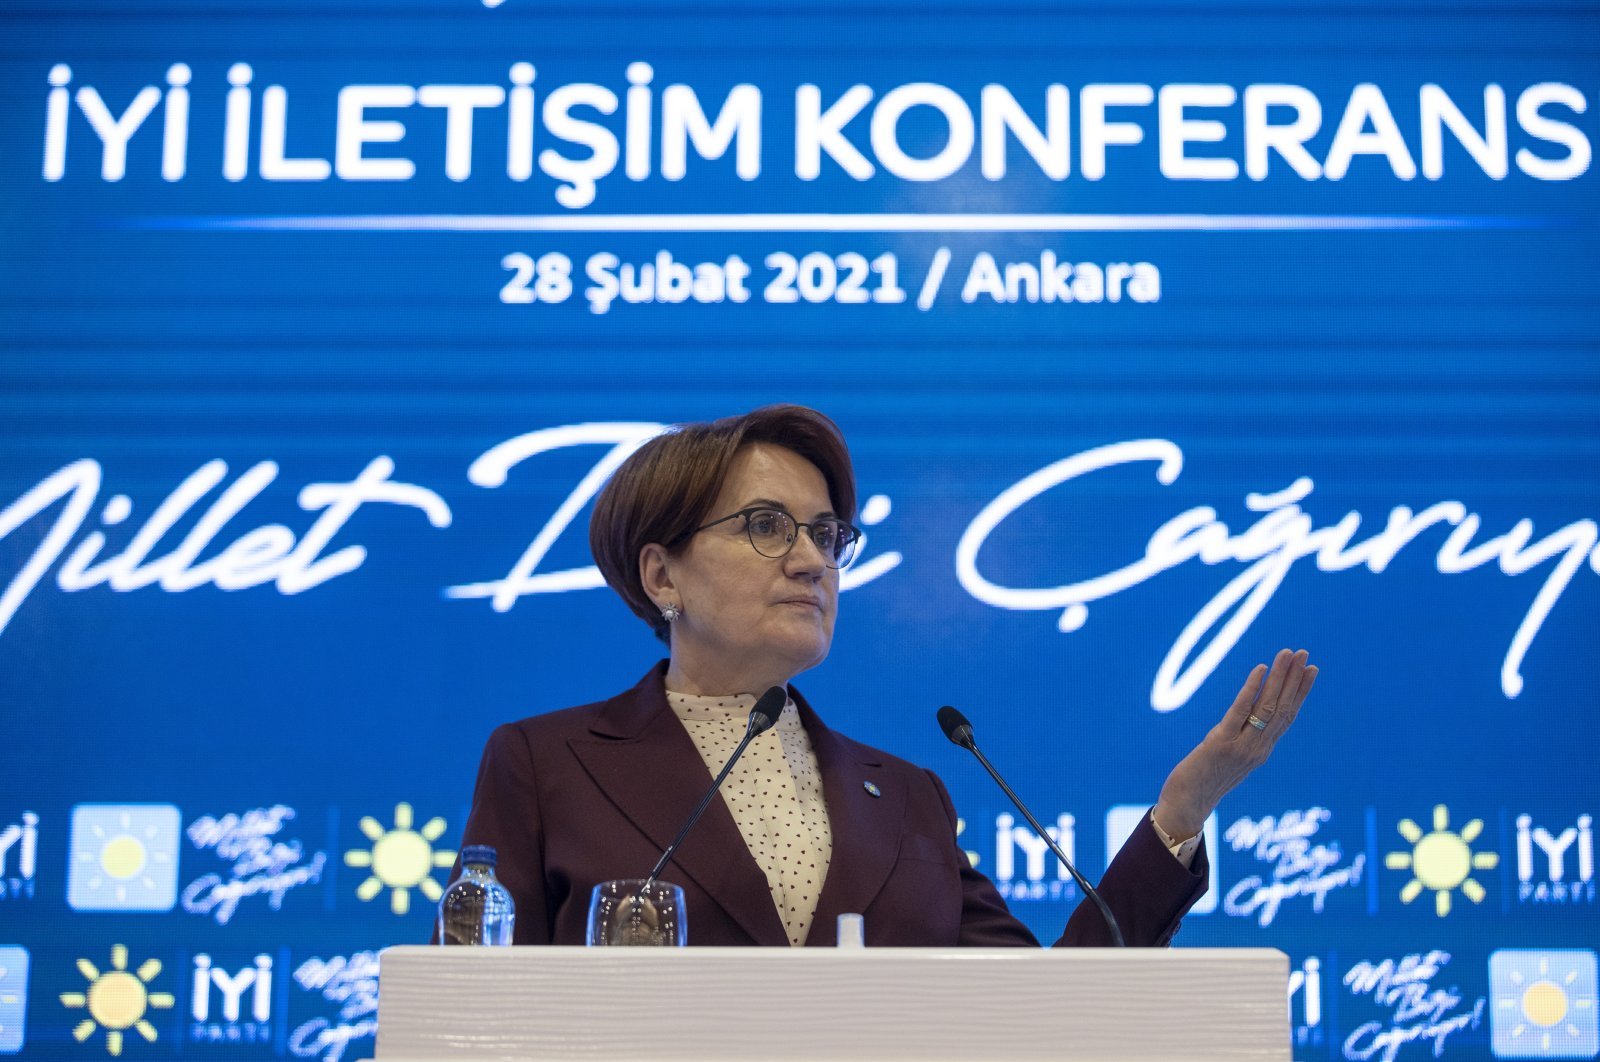 Good Party Chairperson Meral Akşener speaks at her party's Political Communication Conference in Kızılcahamam, Ankara on Feb. 28, 2021. (AA Photo)